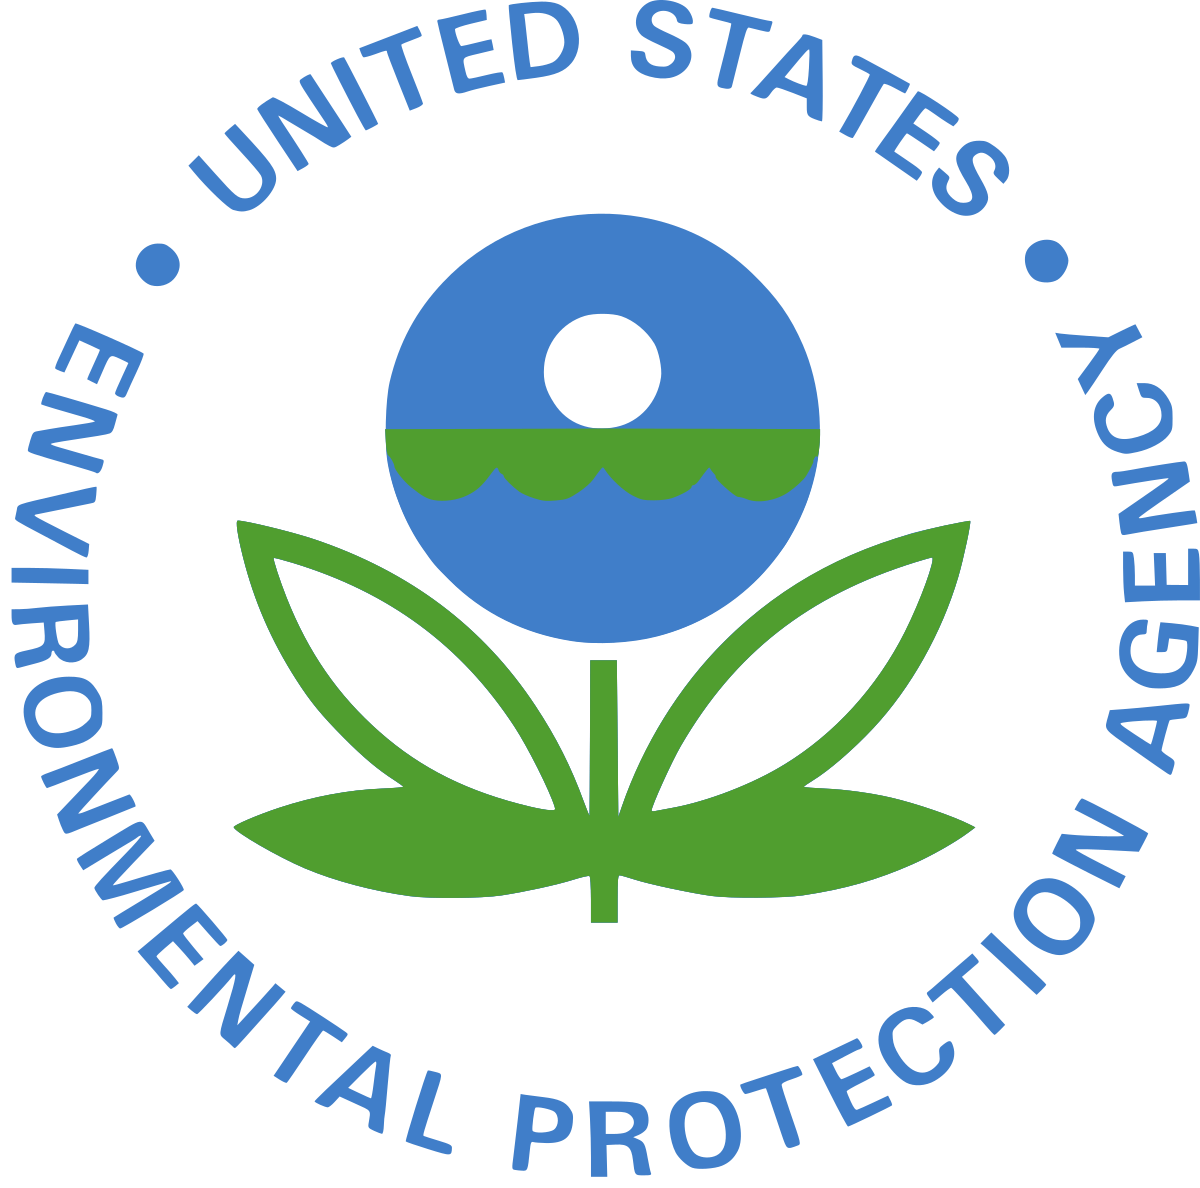 Are you compliant with the EPA's underground storage tank rules?